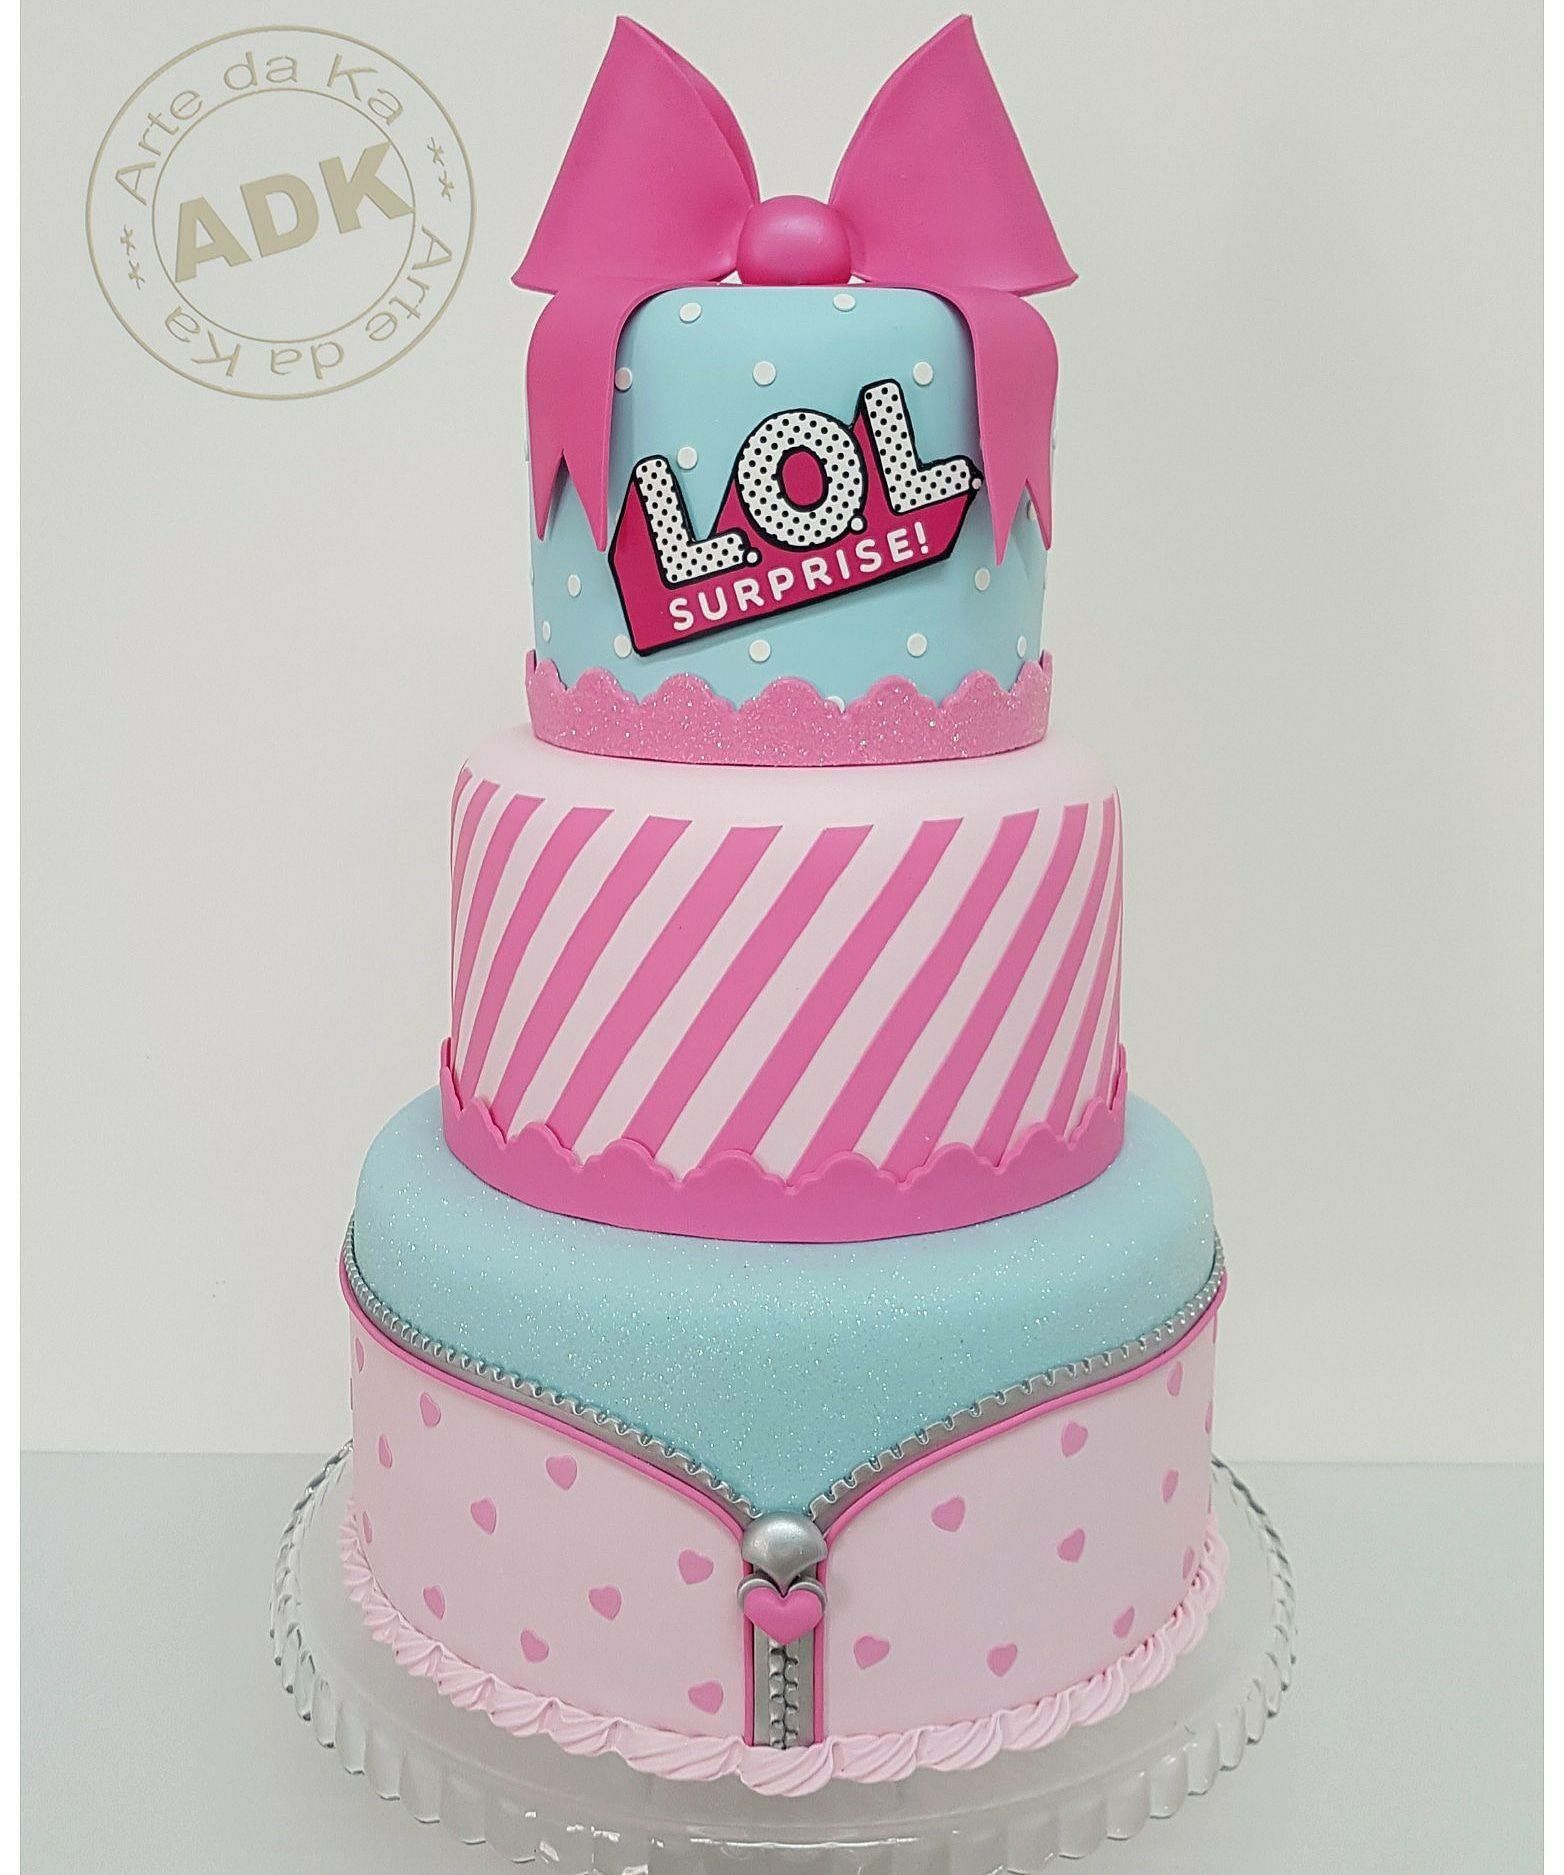 New Theme Here Cake L O L Surprise Available For Lease Only For